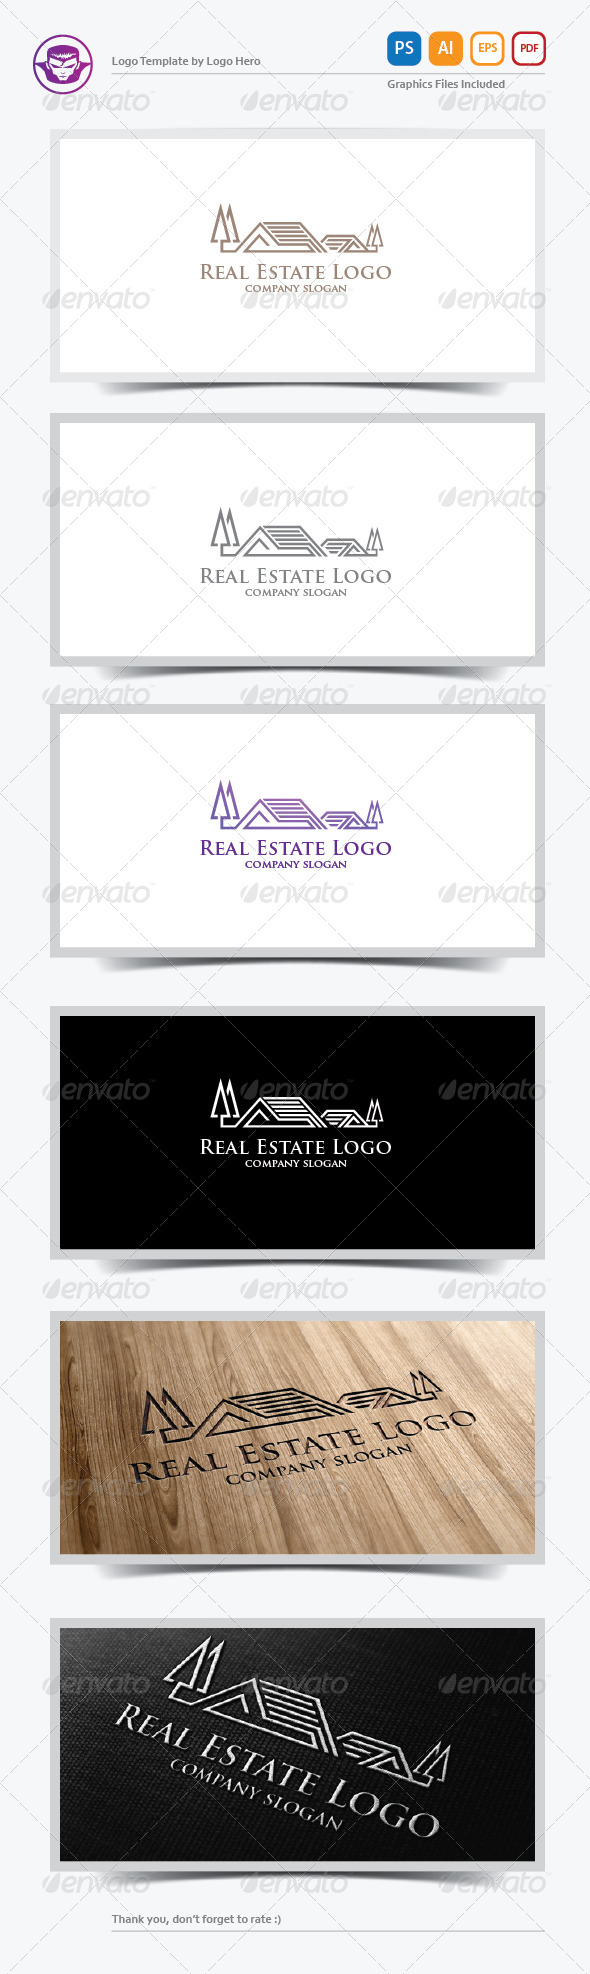 GraphicRiver Real Estate Logo Template 6016661